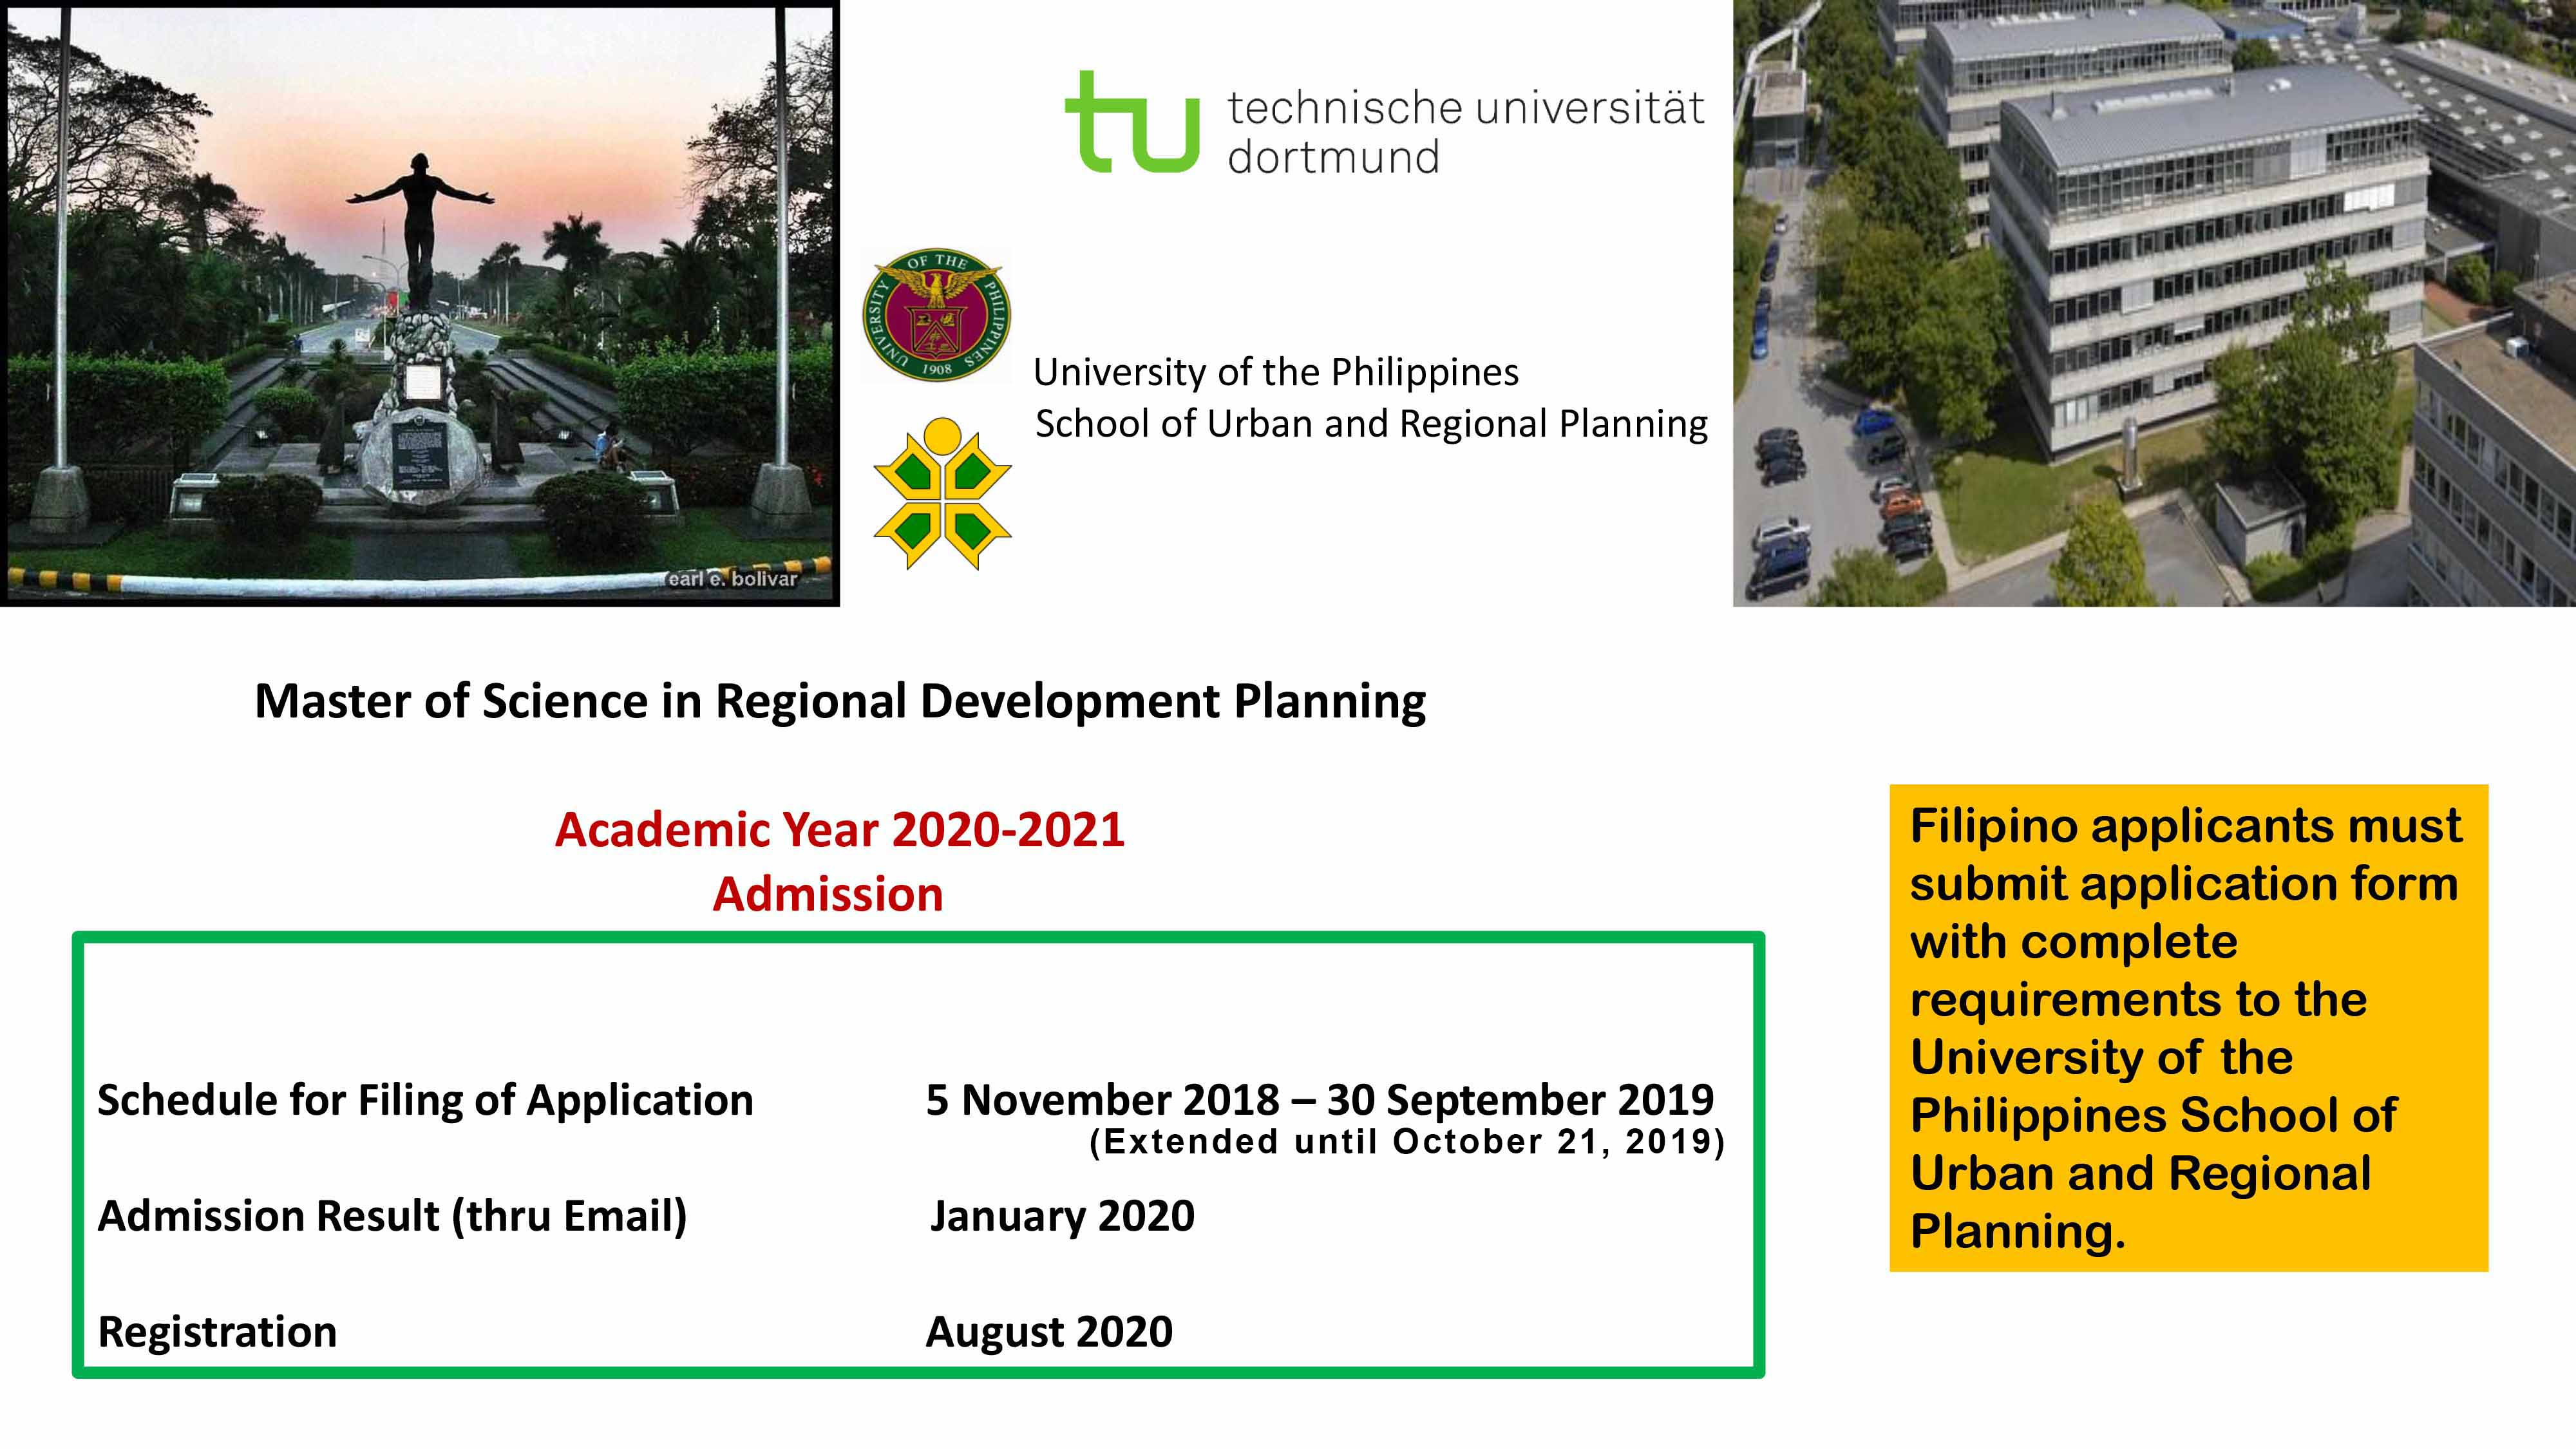 UP School of Urban and Regional Planning